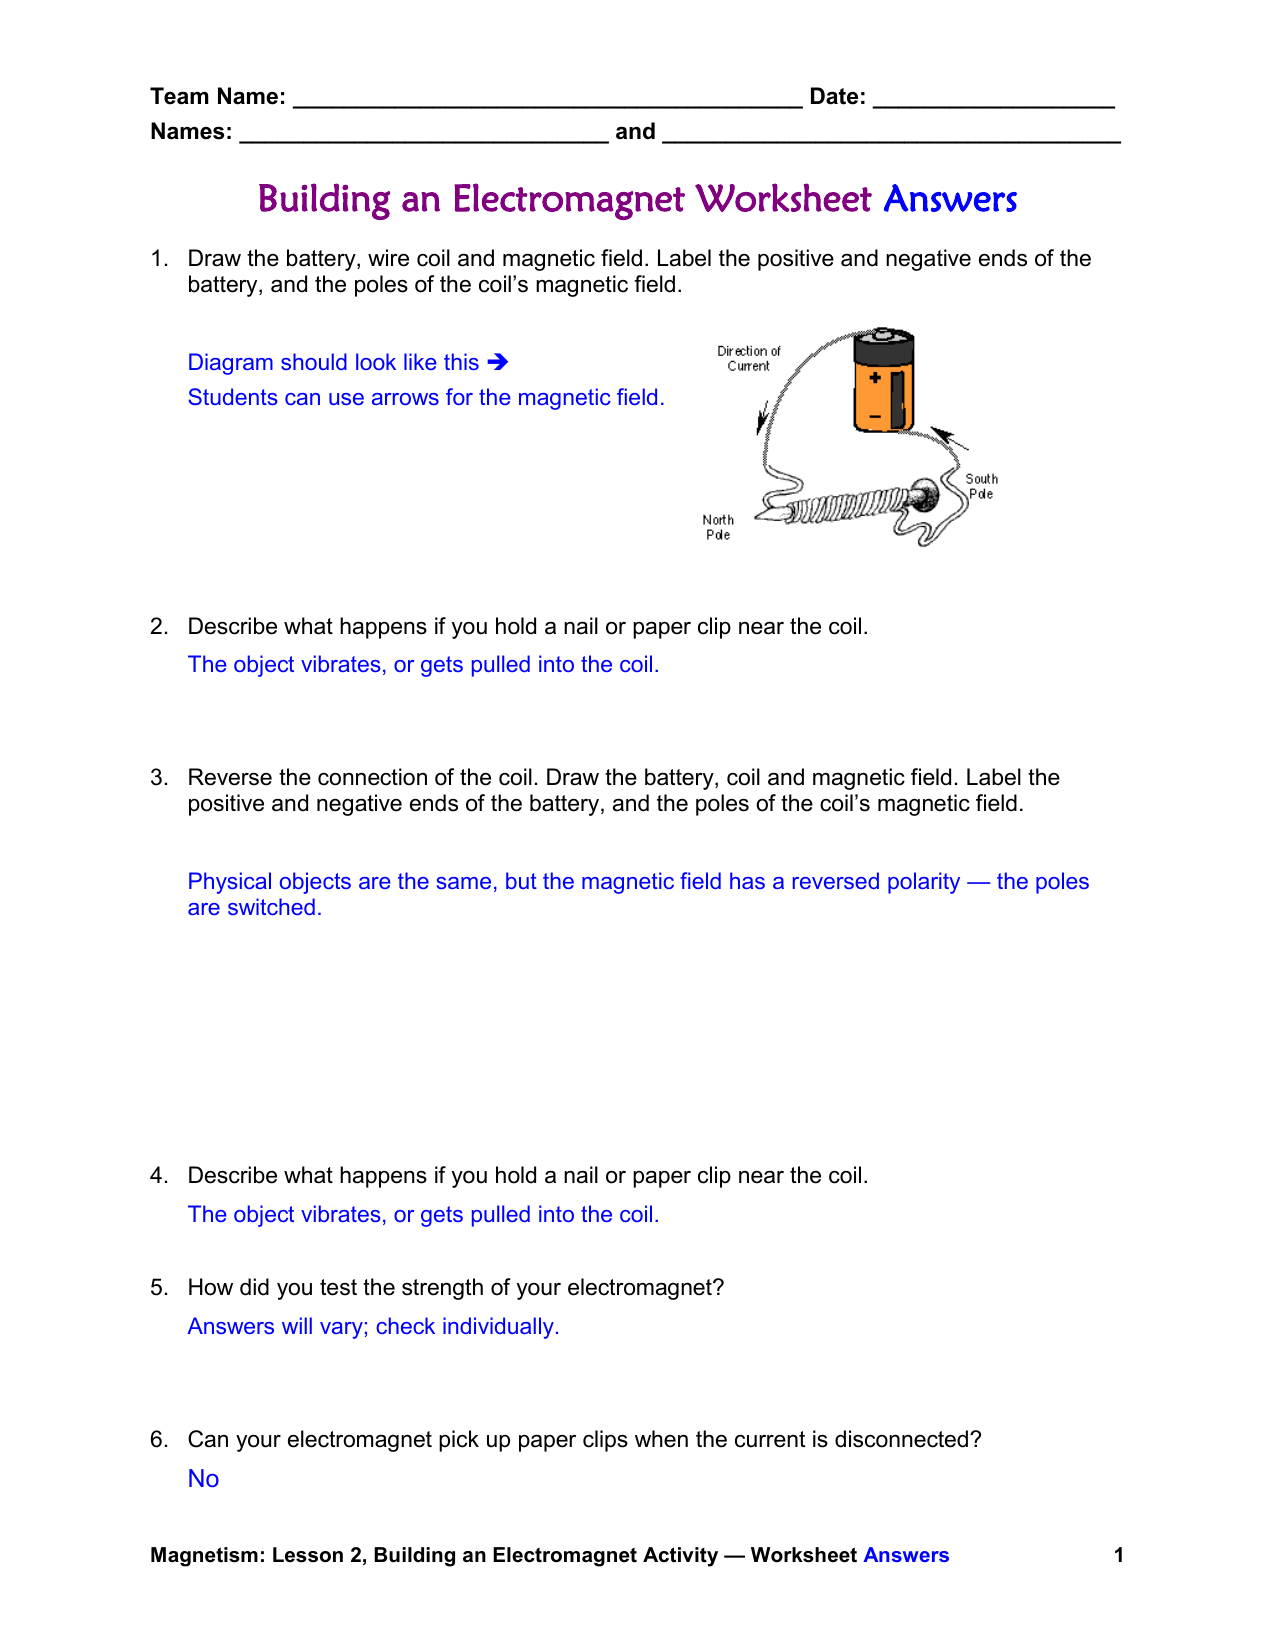 Building An Electromagnet Worksheet Answers